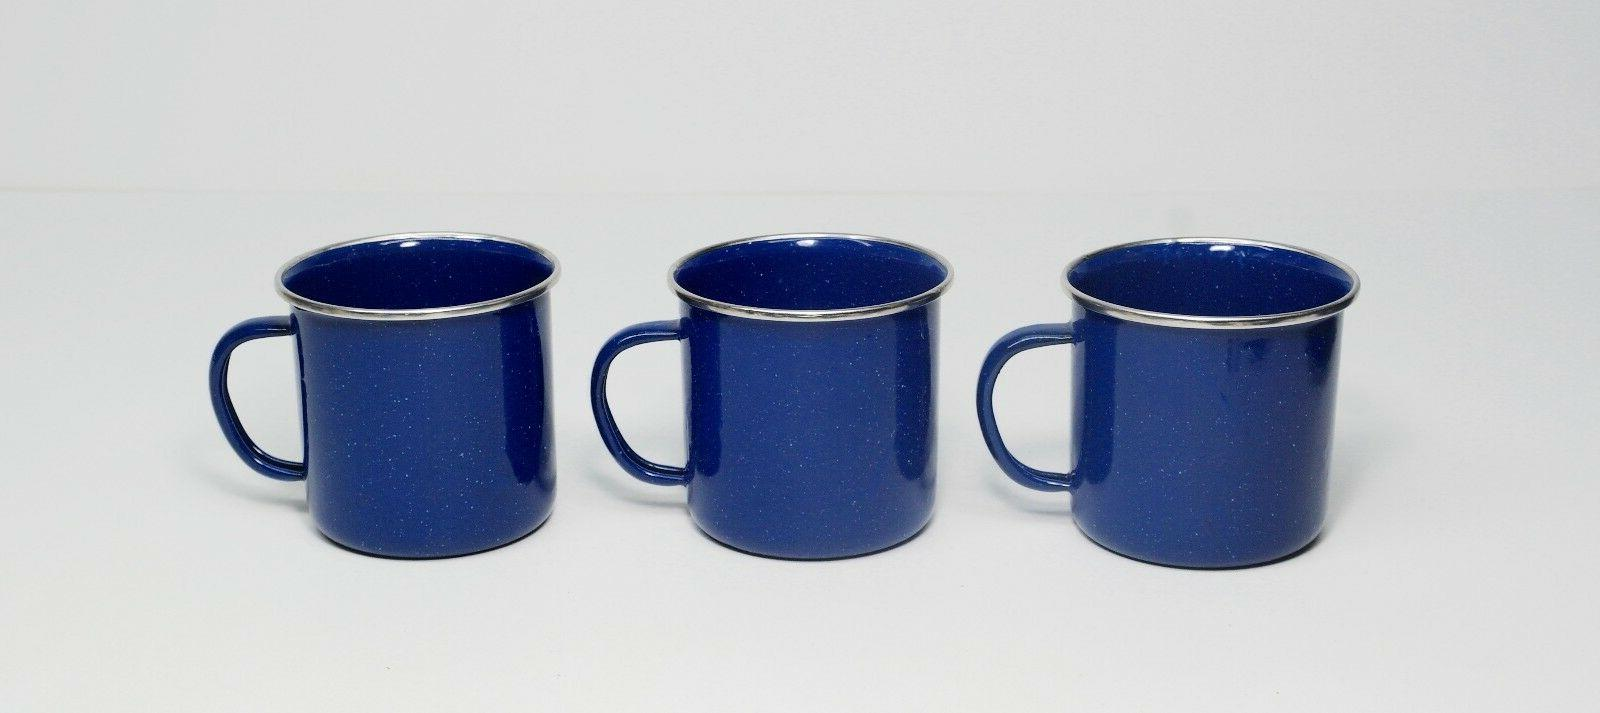 Lot of 3 - Blue Graniteware 12 oz Enamel Tea Coffee Cup Mug